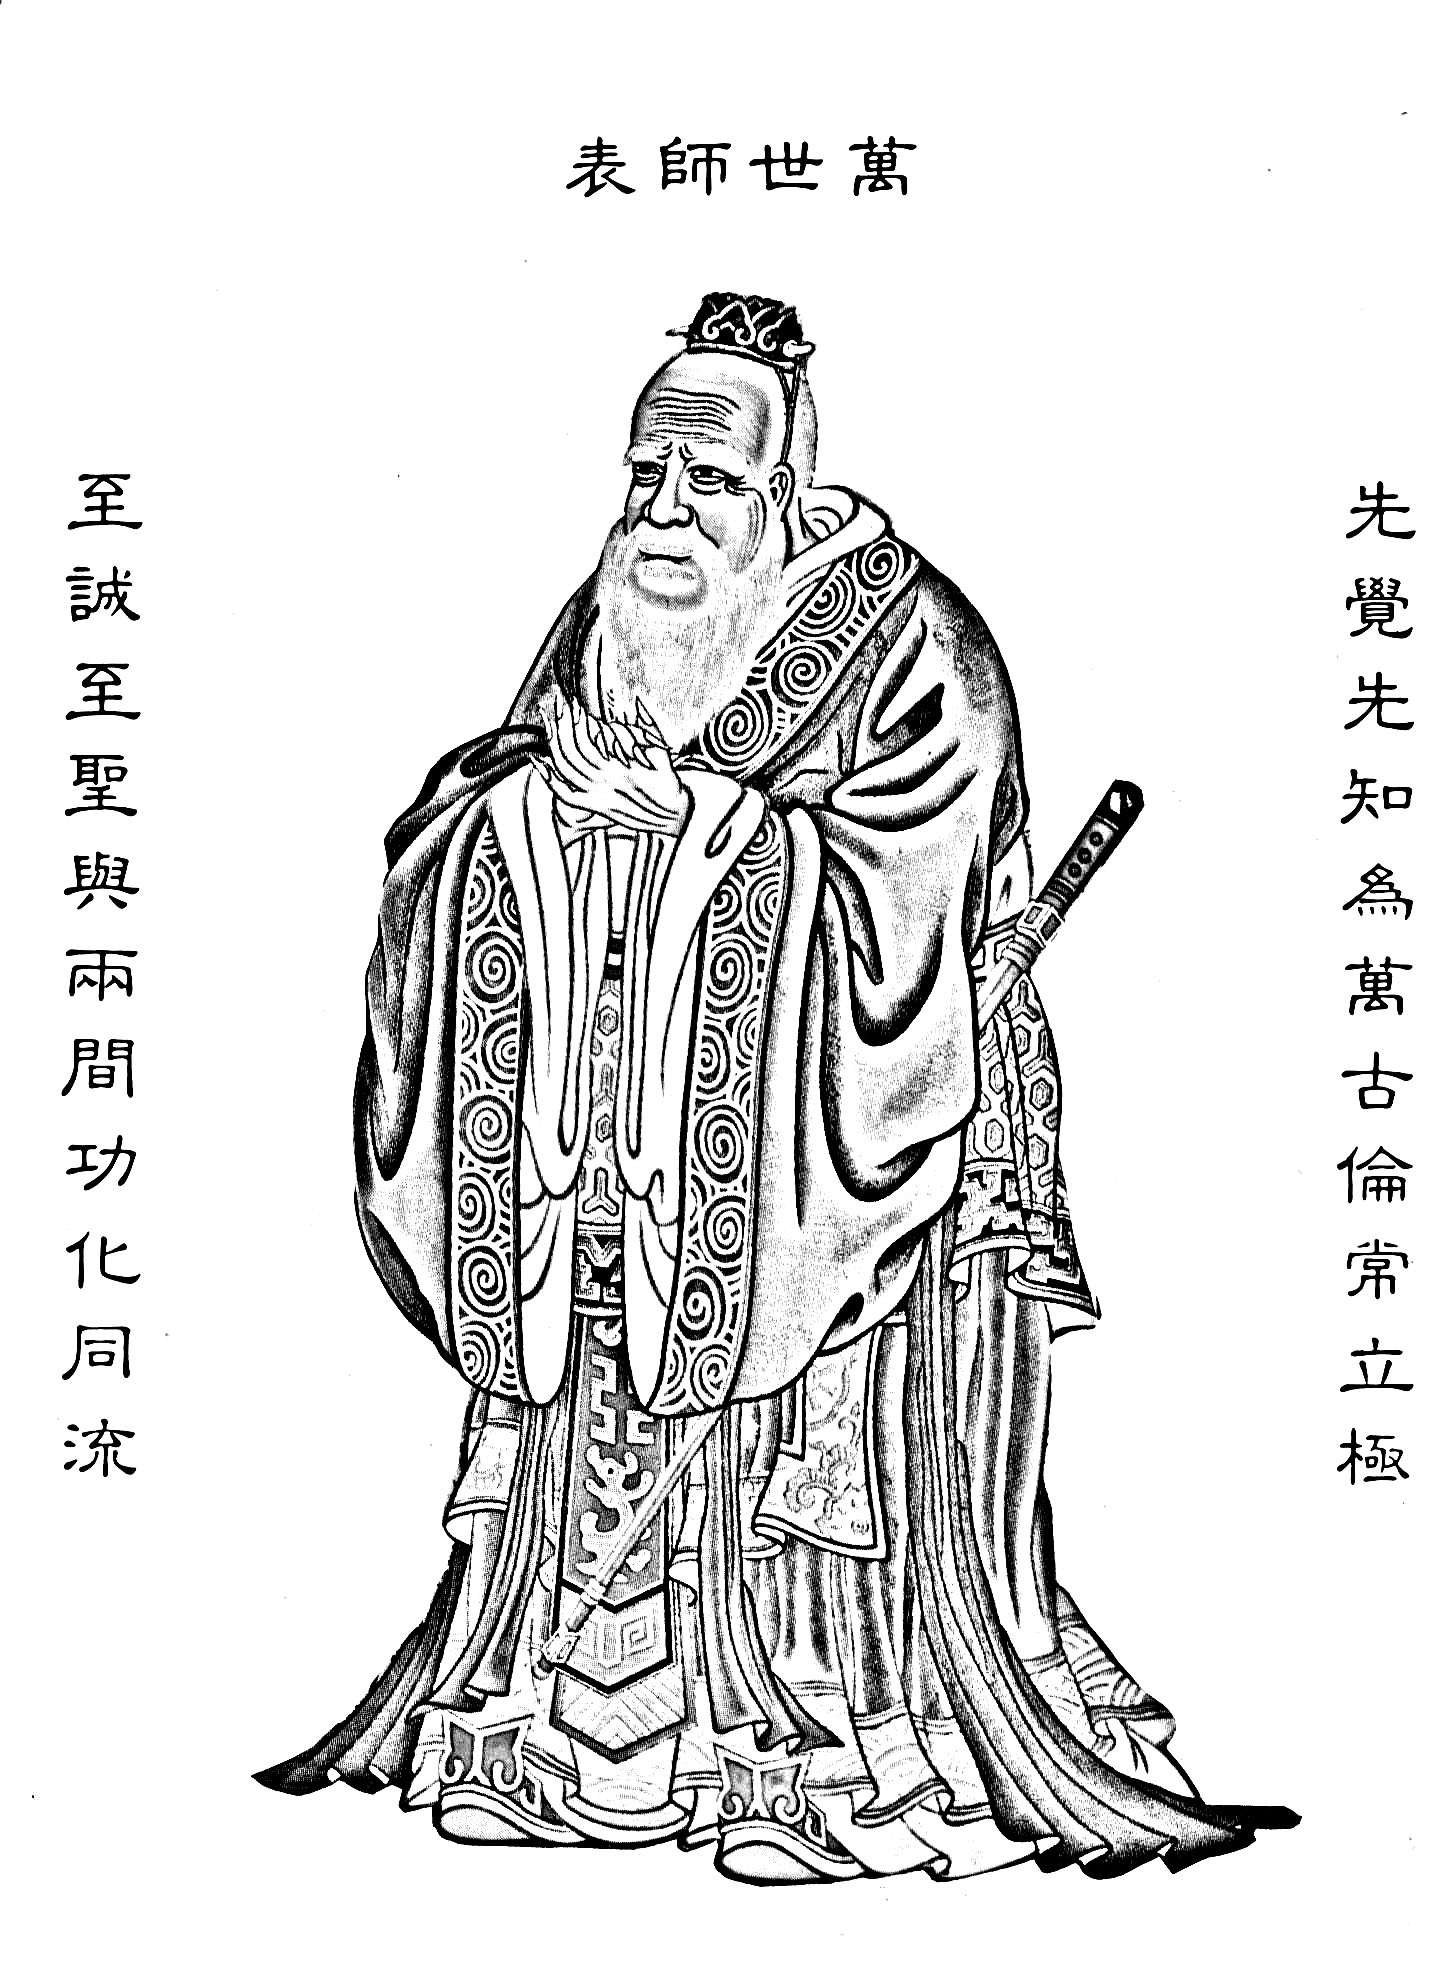 Confucius | China & Asia - Coloring pages for adults | JustColor